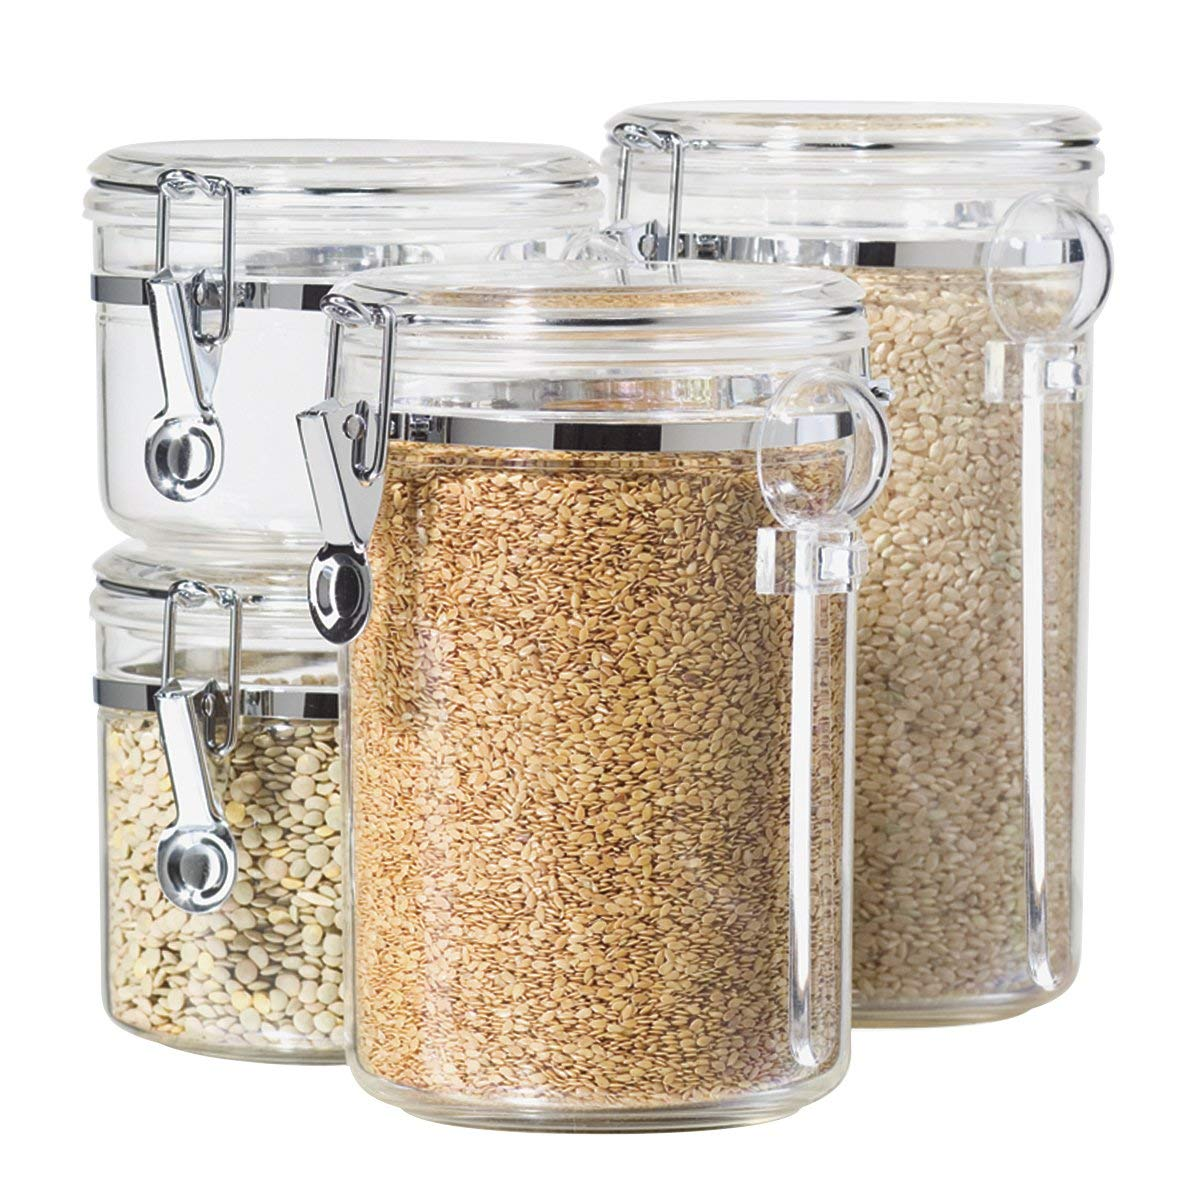 gifts for homesteaders airtight storage containers.jpg